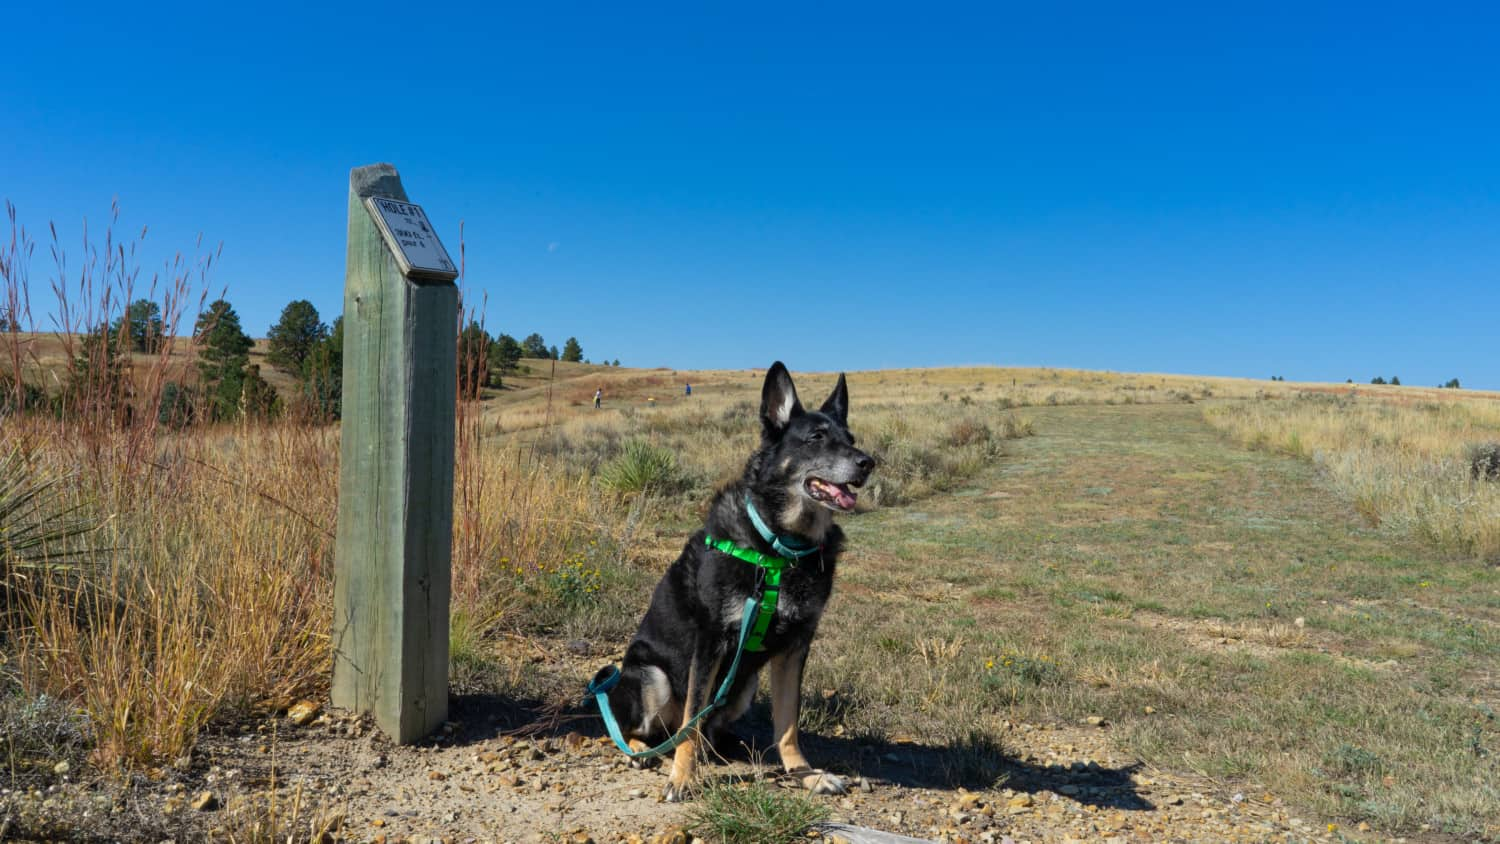 Buster the German Shepherd from GoPetFriendly.com at the pet-friendly disc golf course at Angostura Recreation Area in the Black Hills of South Dakota